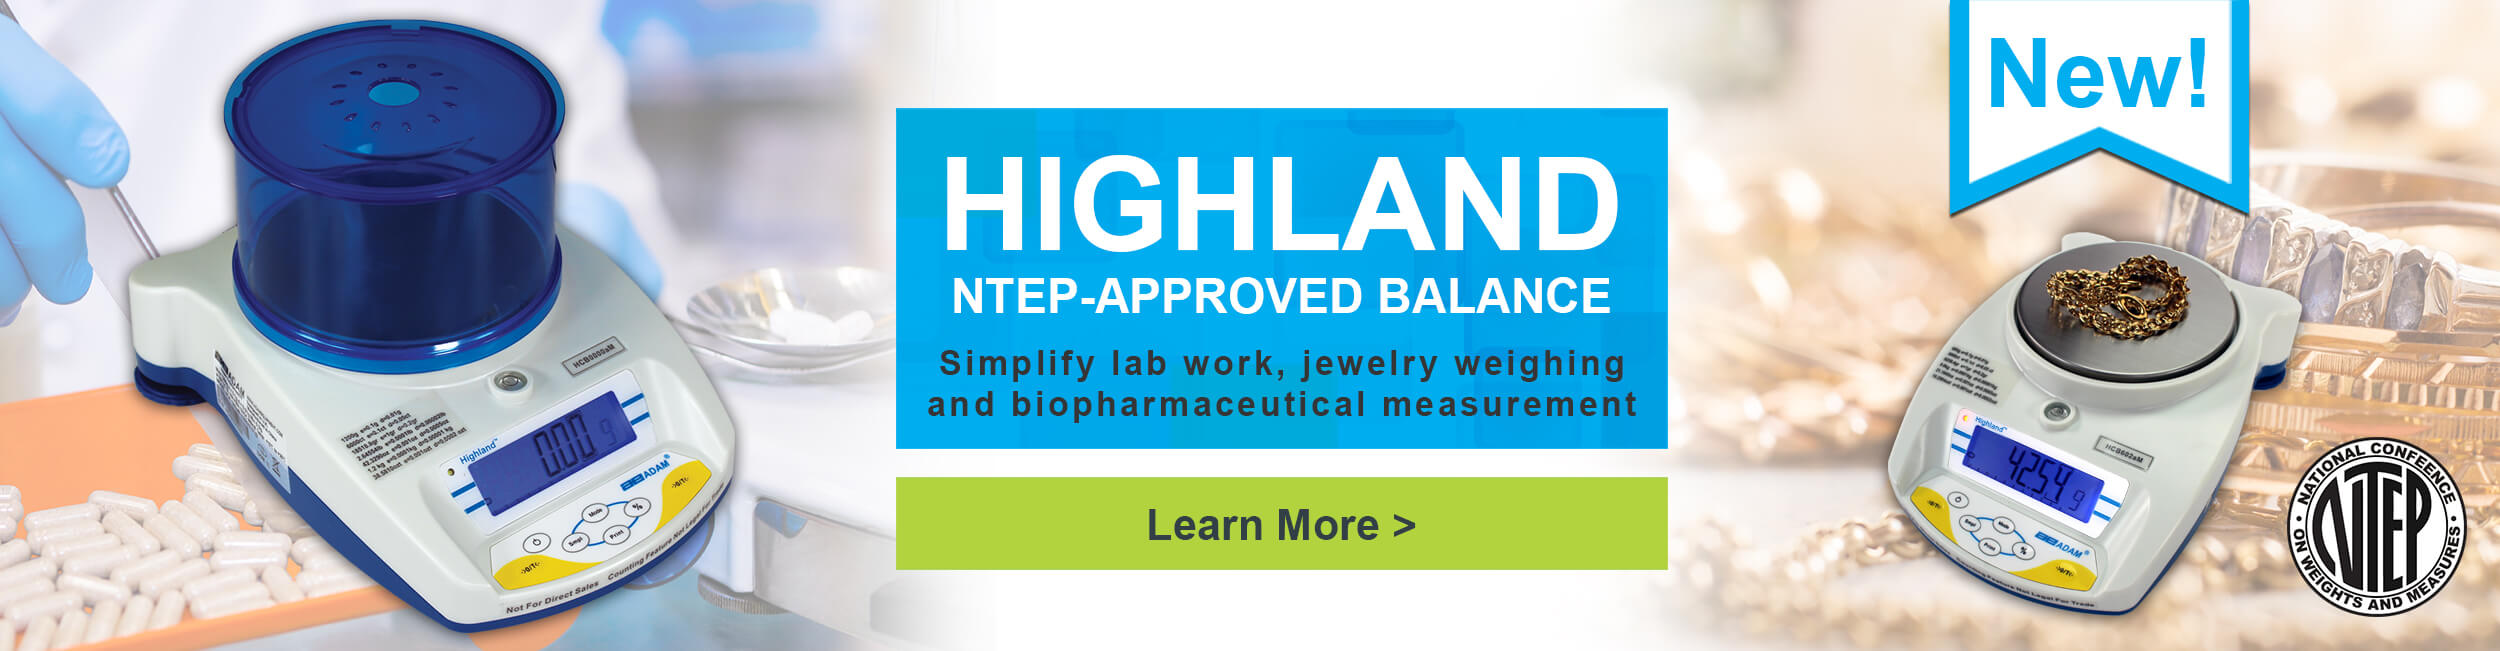 Highland NTEP-Approved Balance. Simplify lab work, jewelry weighing and biopharmaceutical measurement.